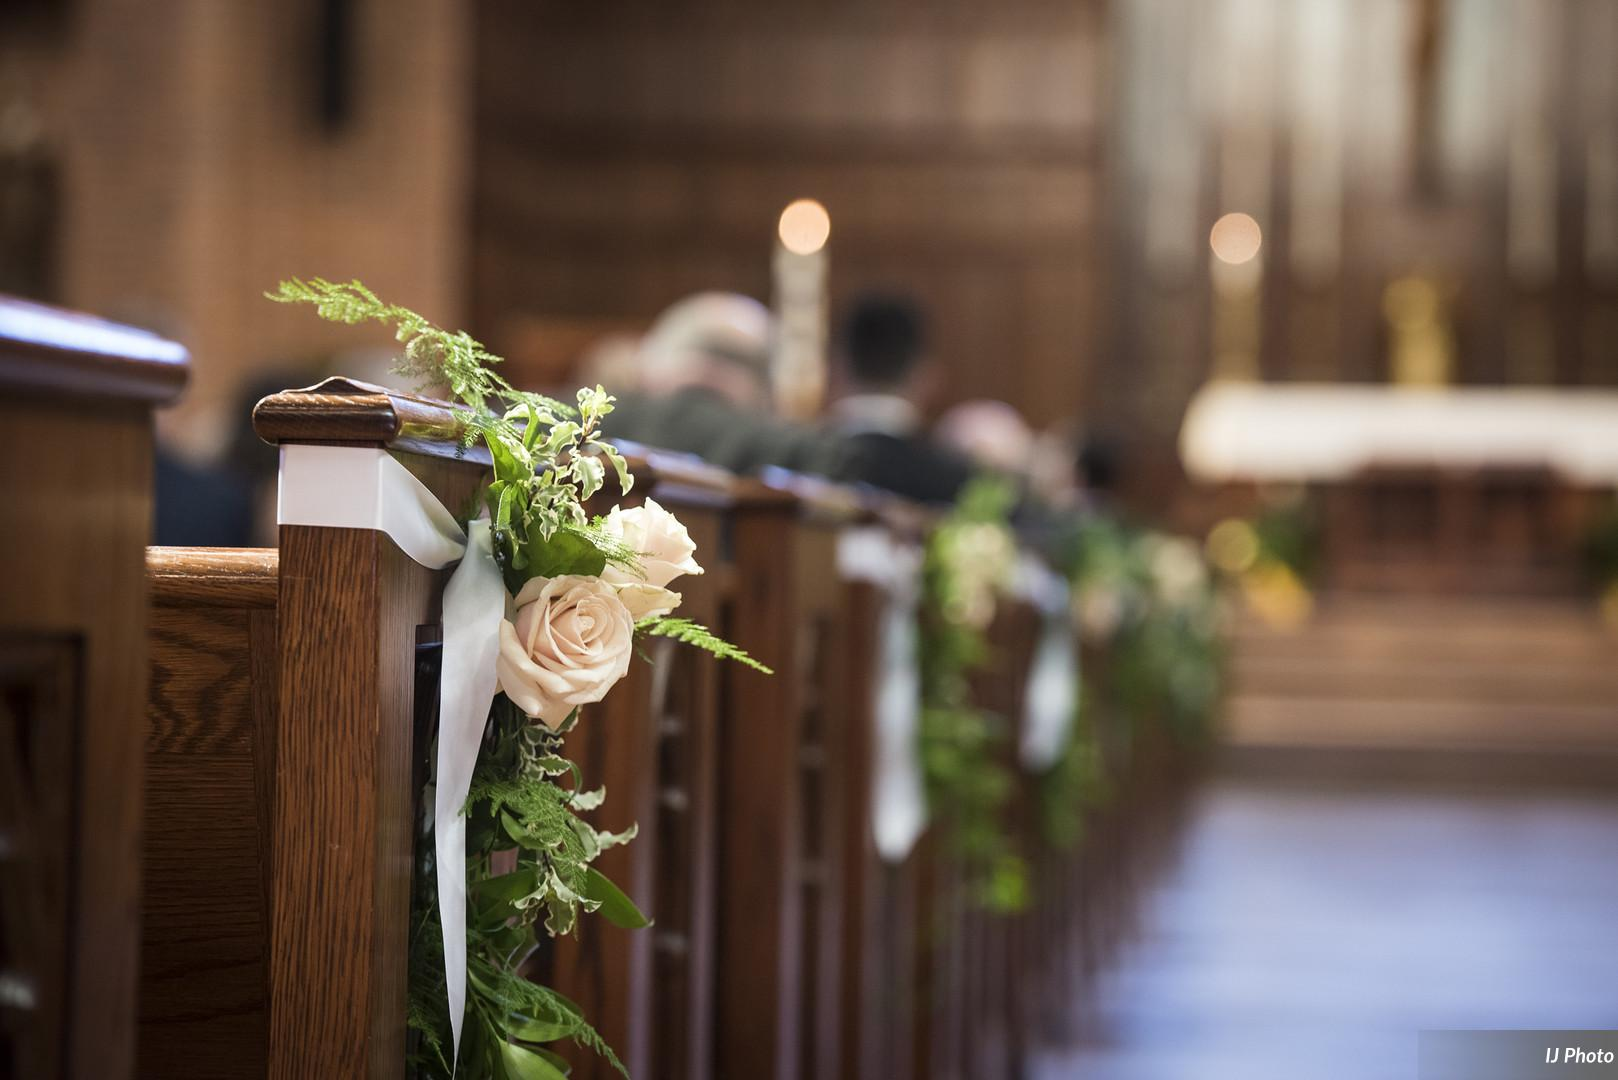 Seattle Church Wedding Flowers By Tobey Nelson Events Image Ij Photo 38